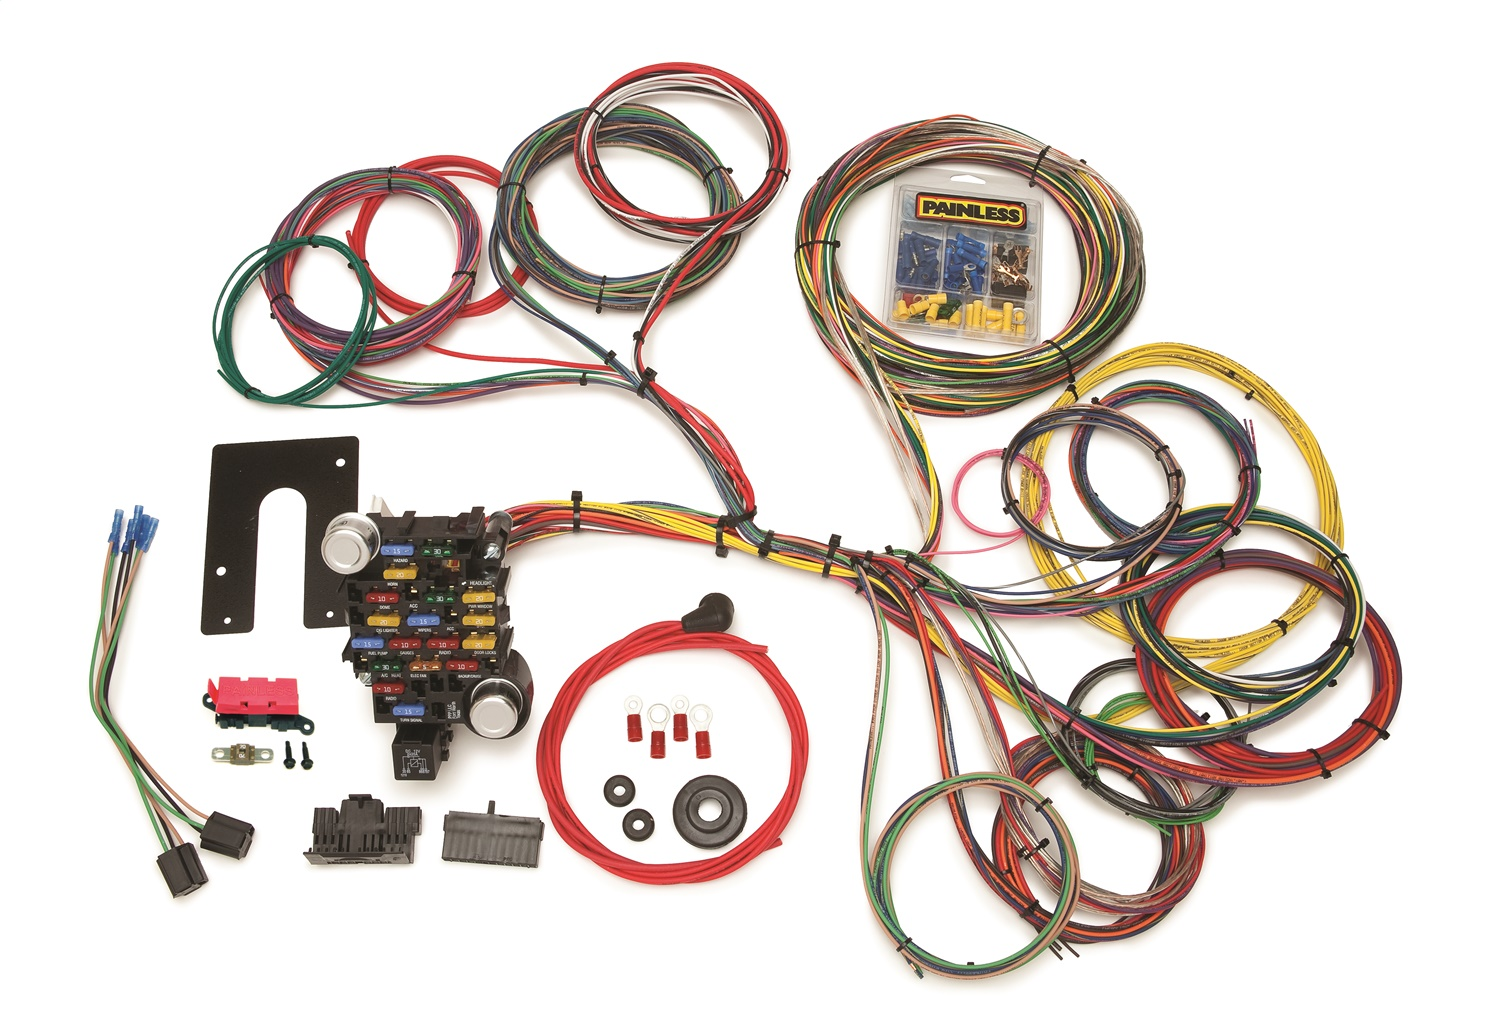 painless wiring 10204 chassis wire harness ebay